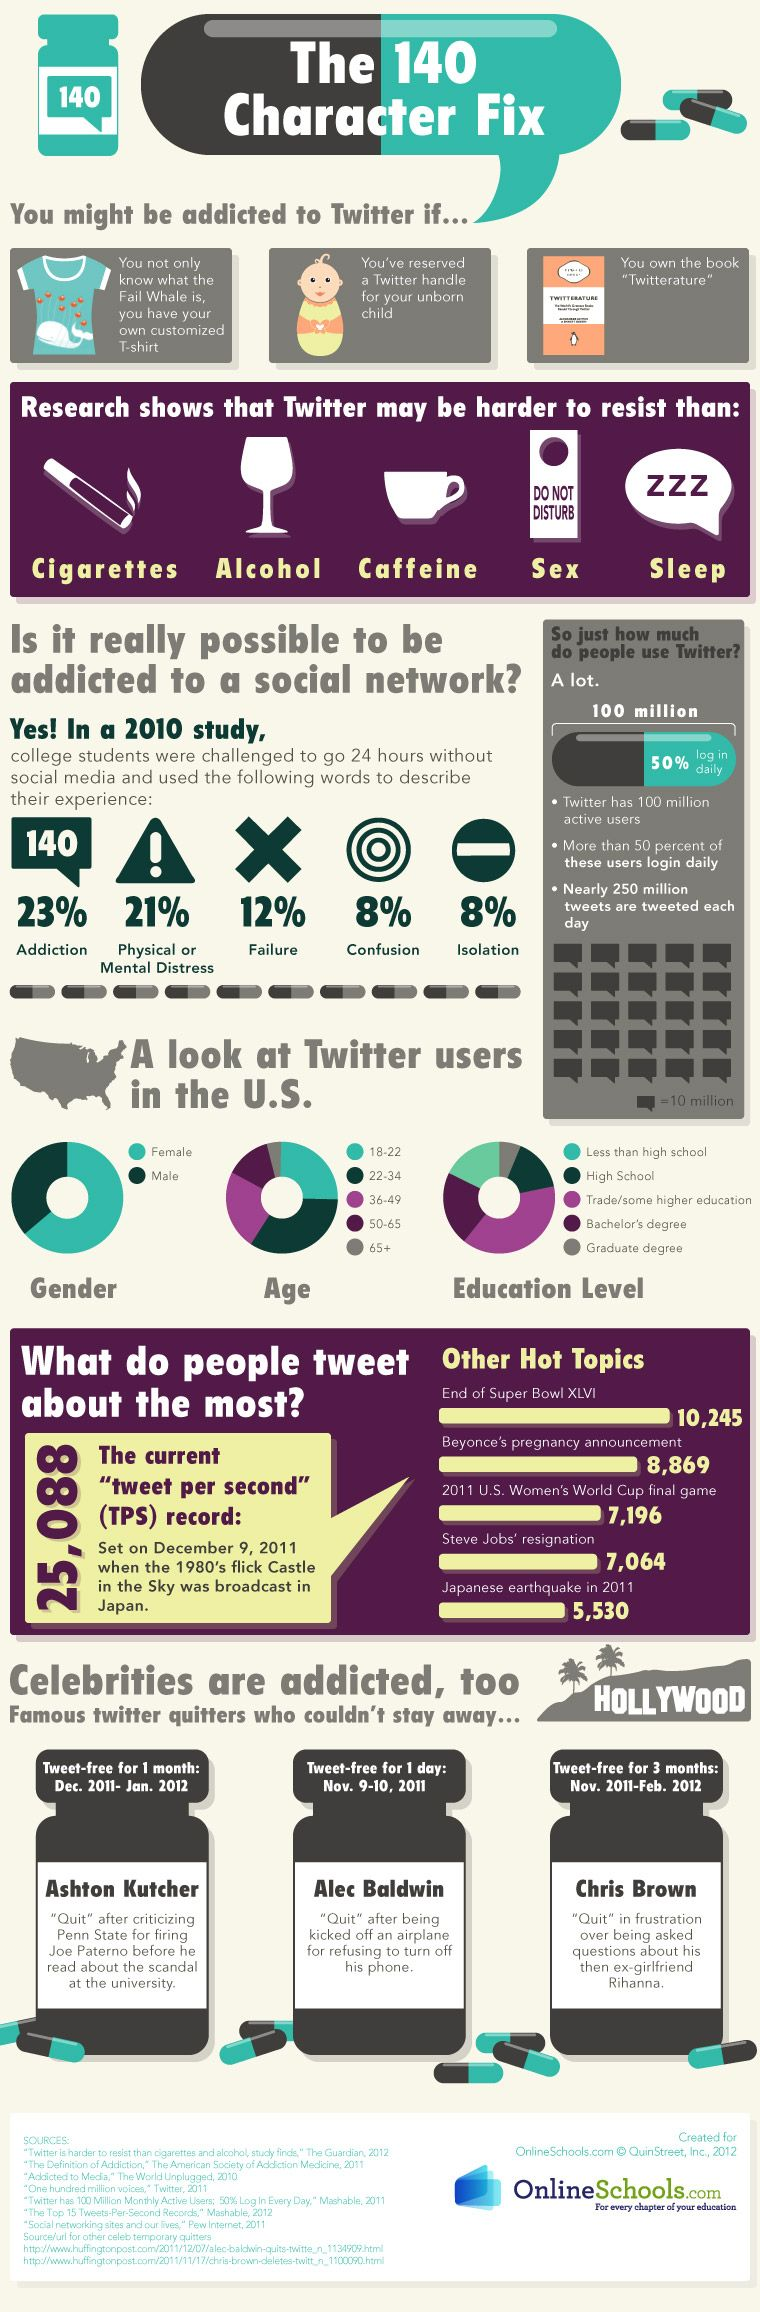 The 140 Character Fix: Twitter Addiction Explained [Infographic]